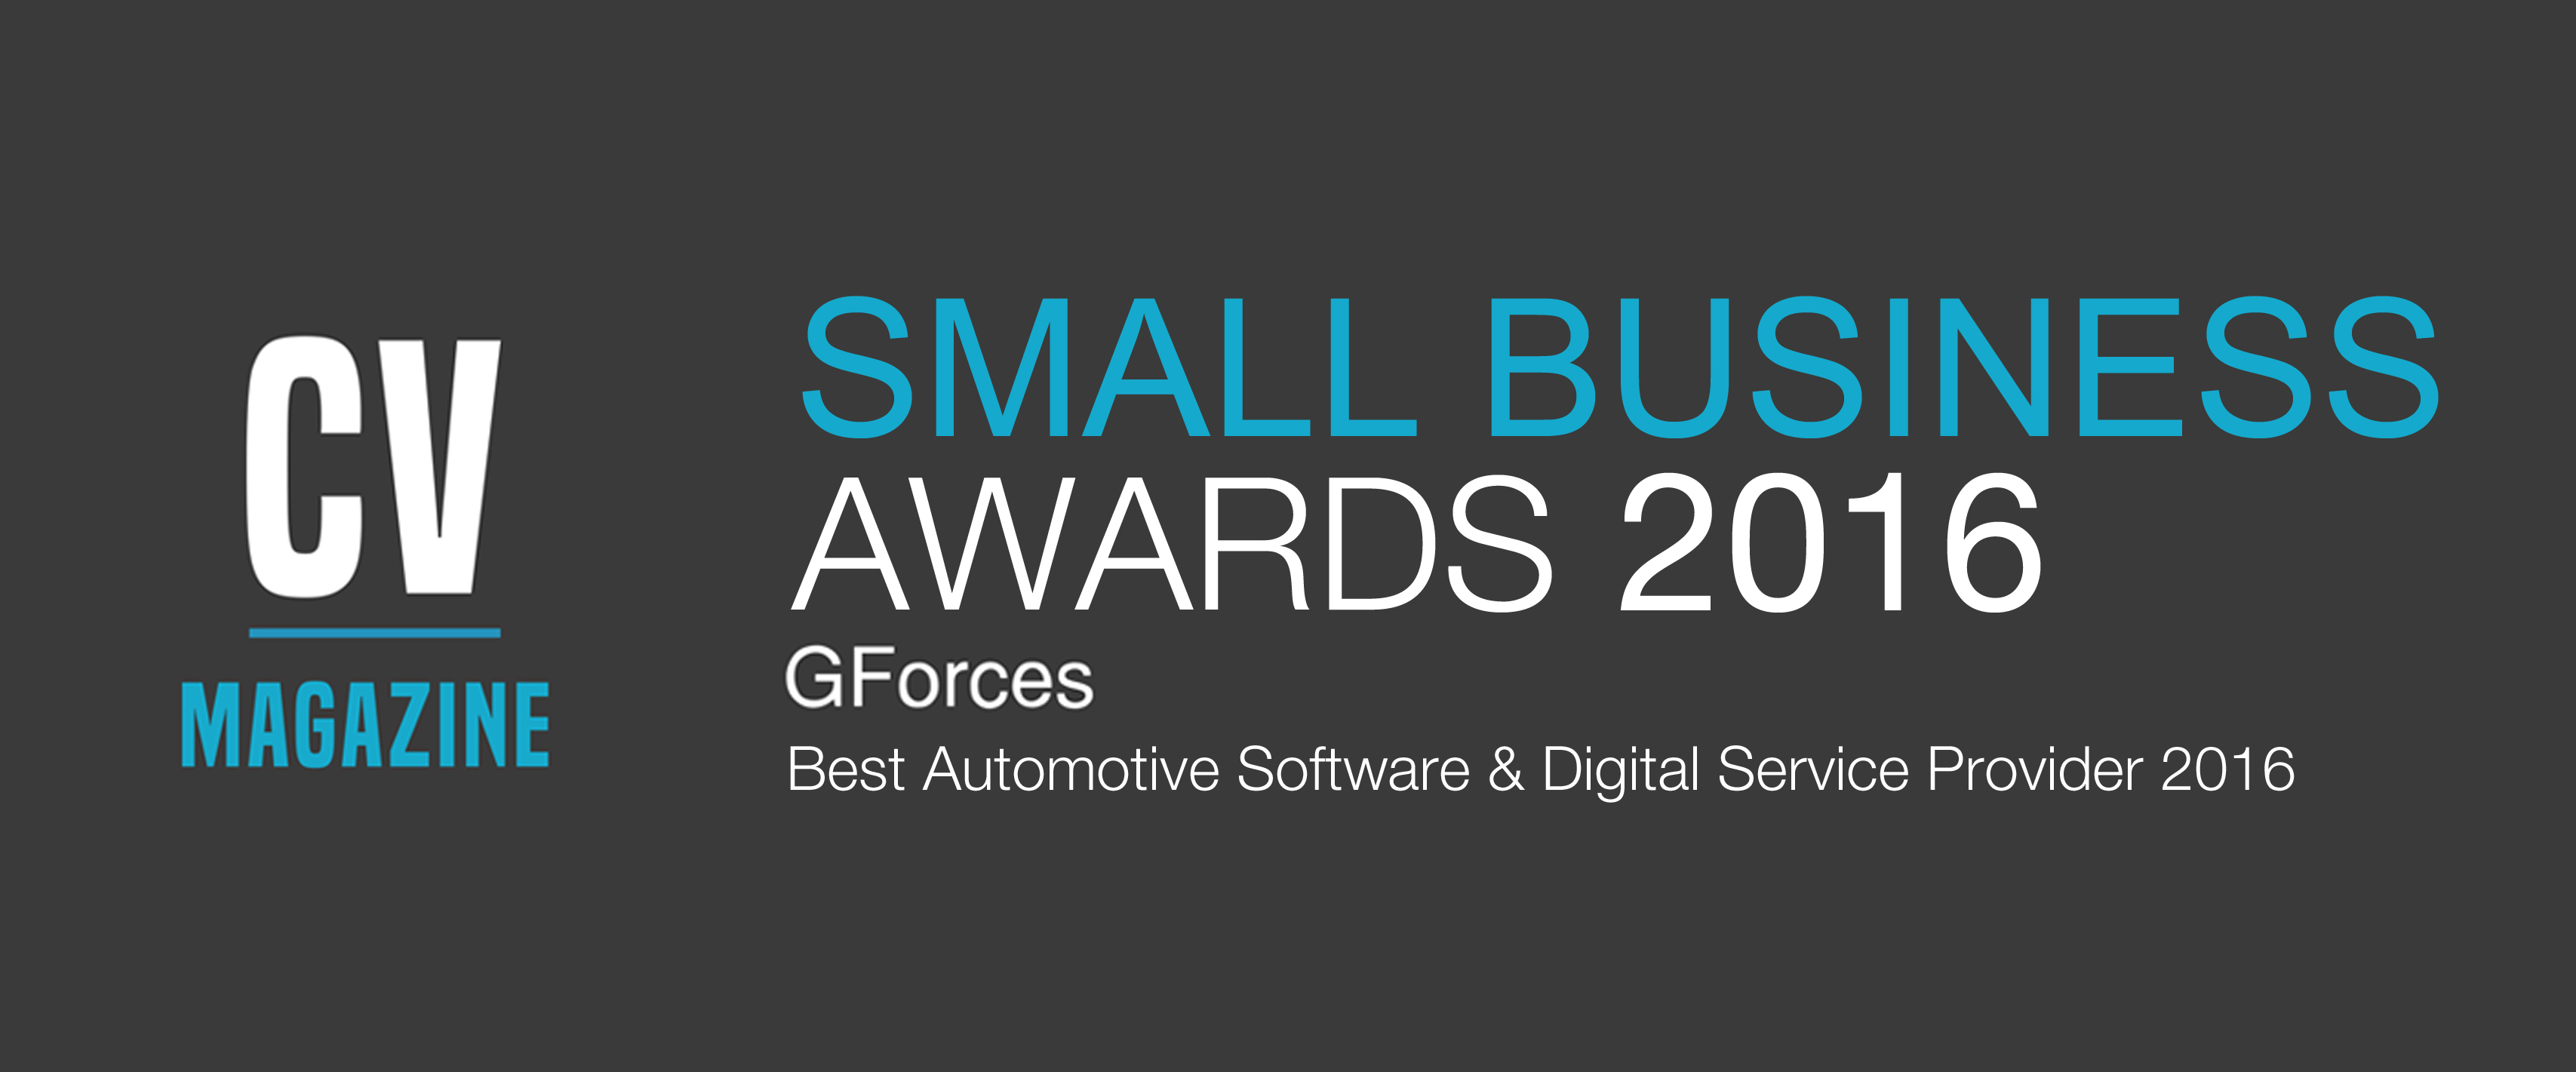 And best automotive software provider goes to…